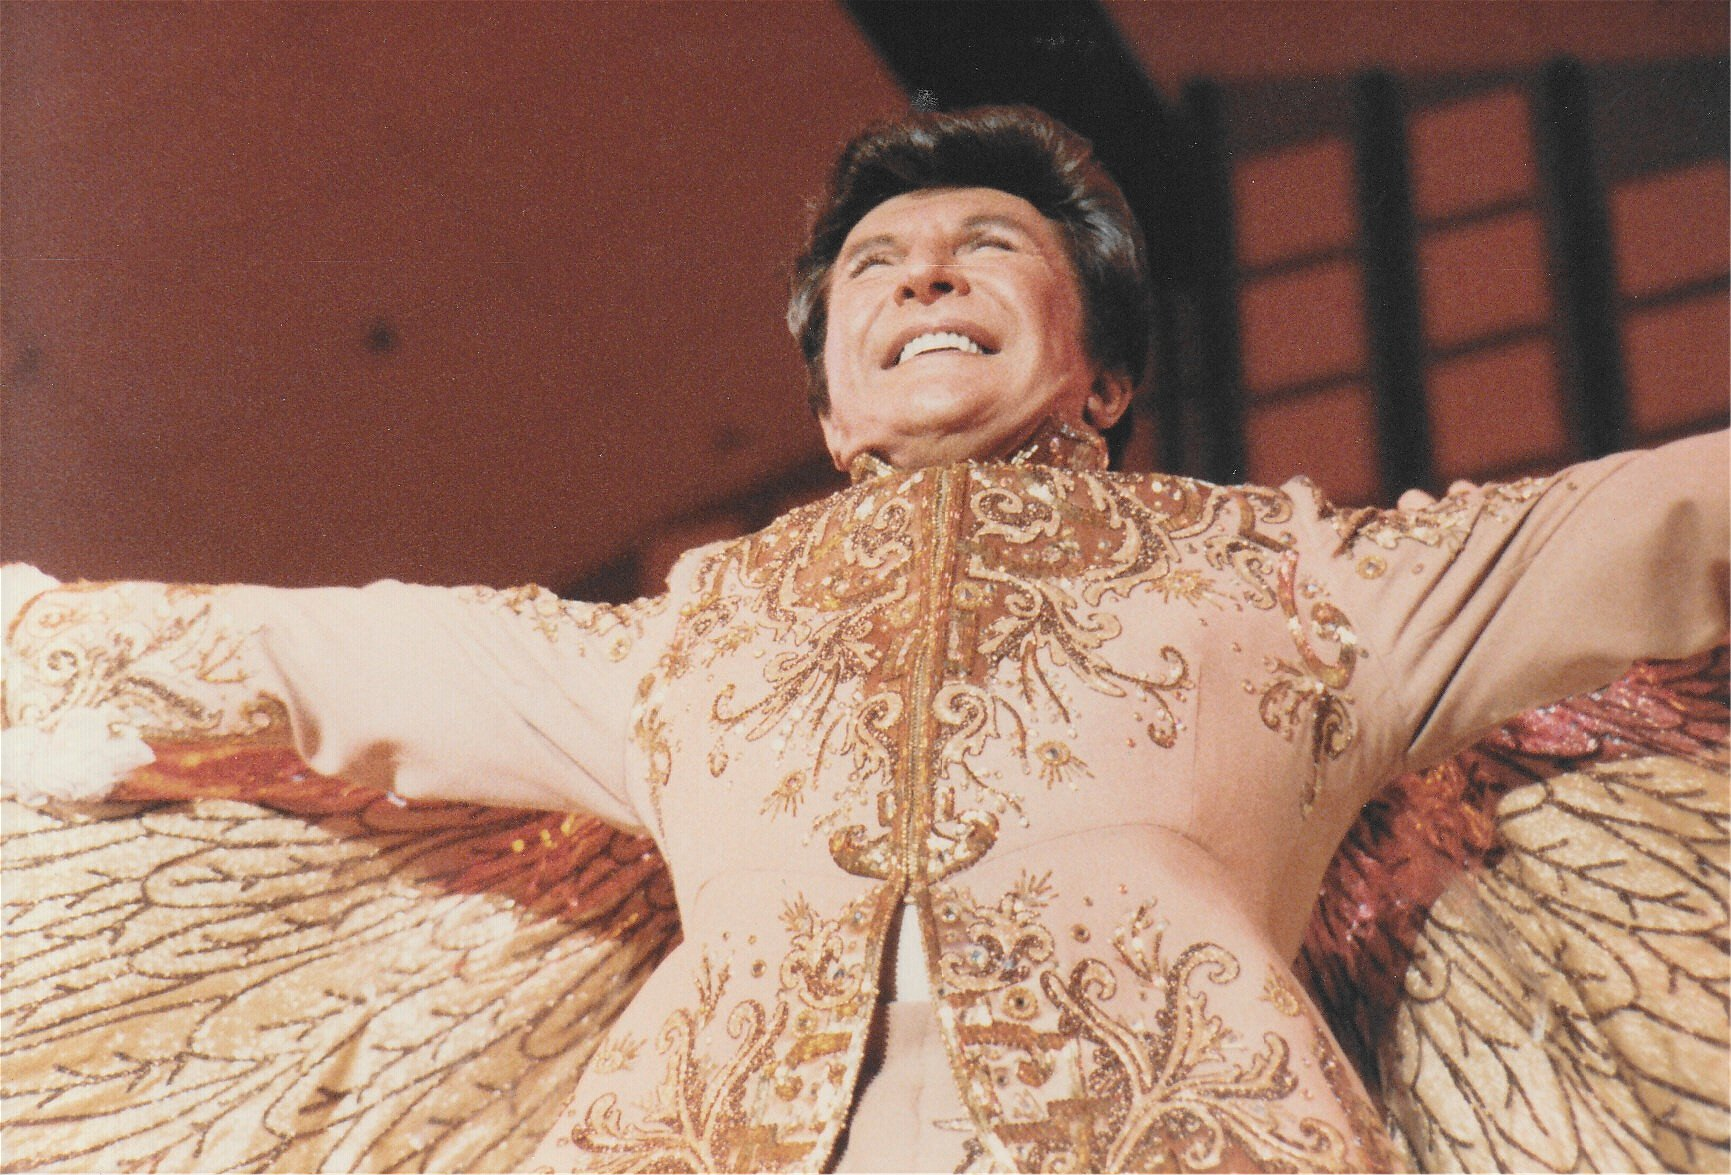 Liberace: rumoured not a fan of careful budgeting. Photo by Alan White.